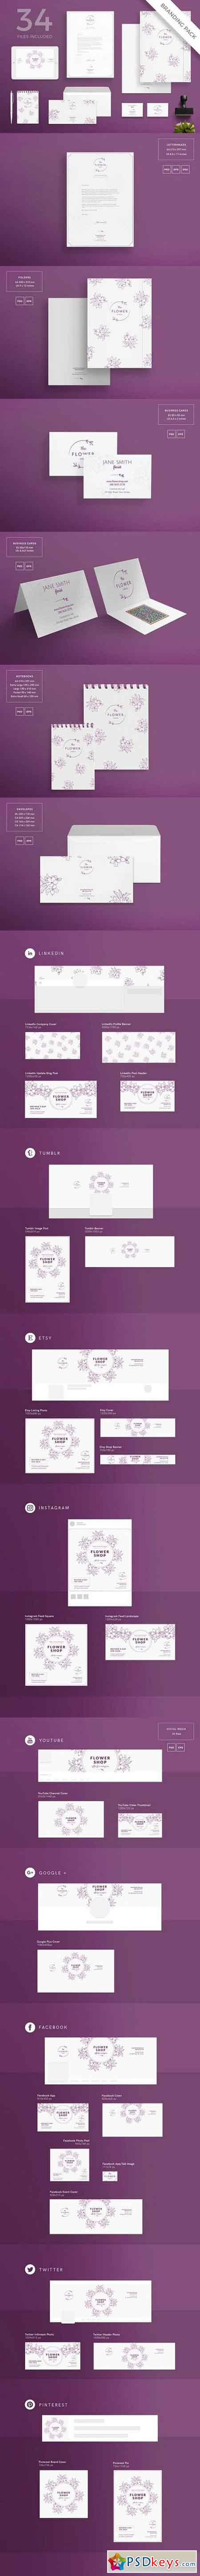 Branding Pack Flower Shop 1495431